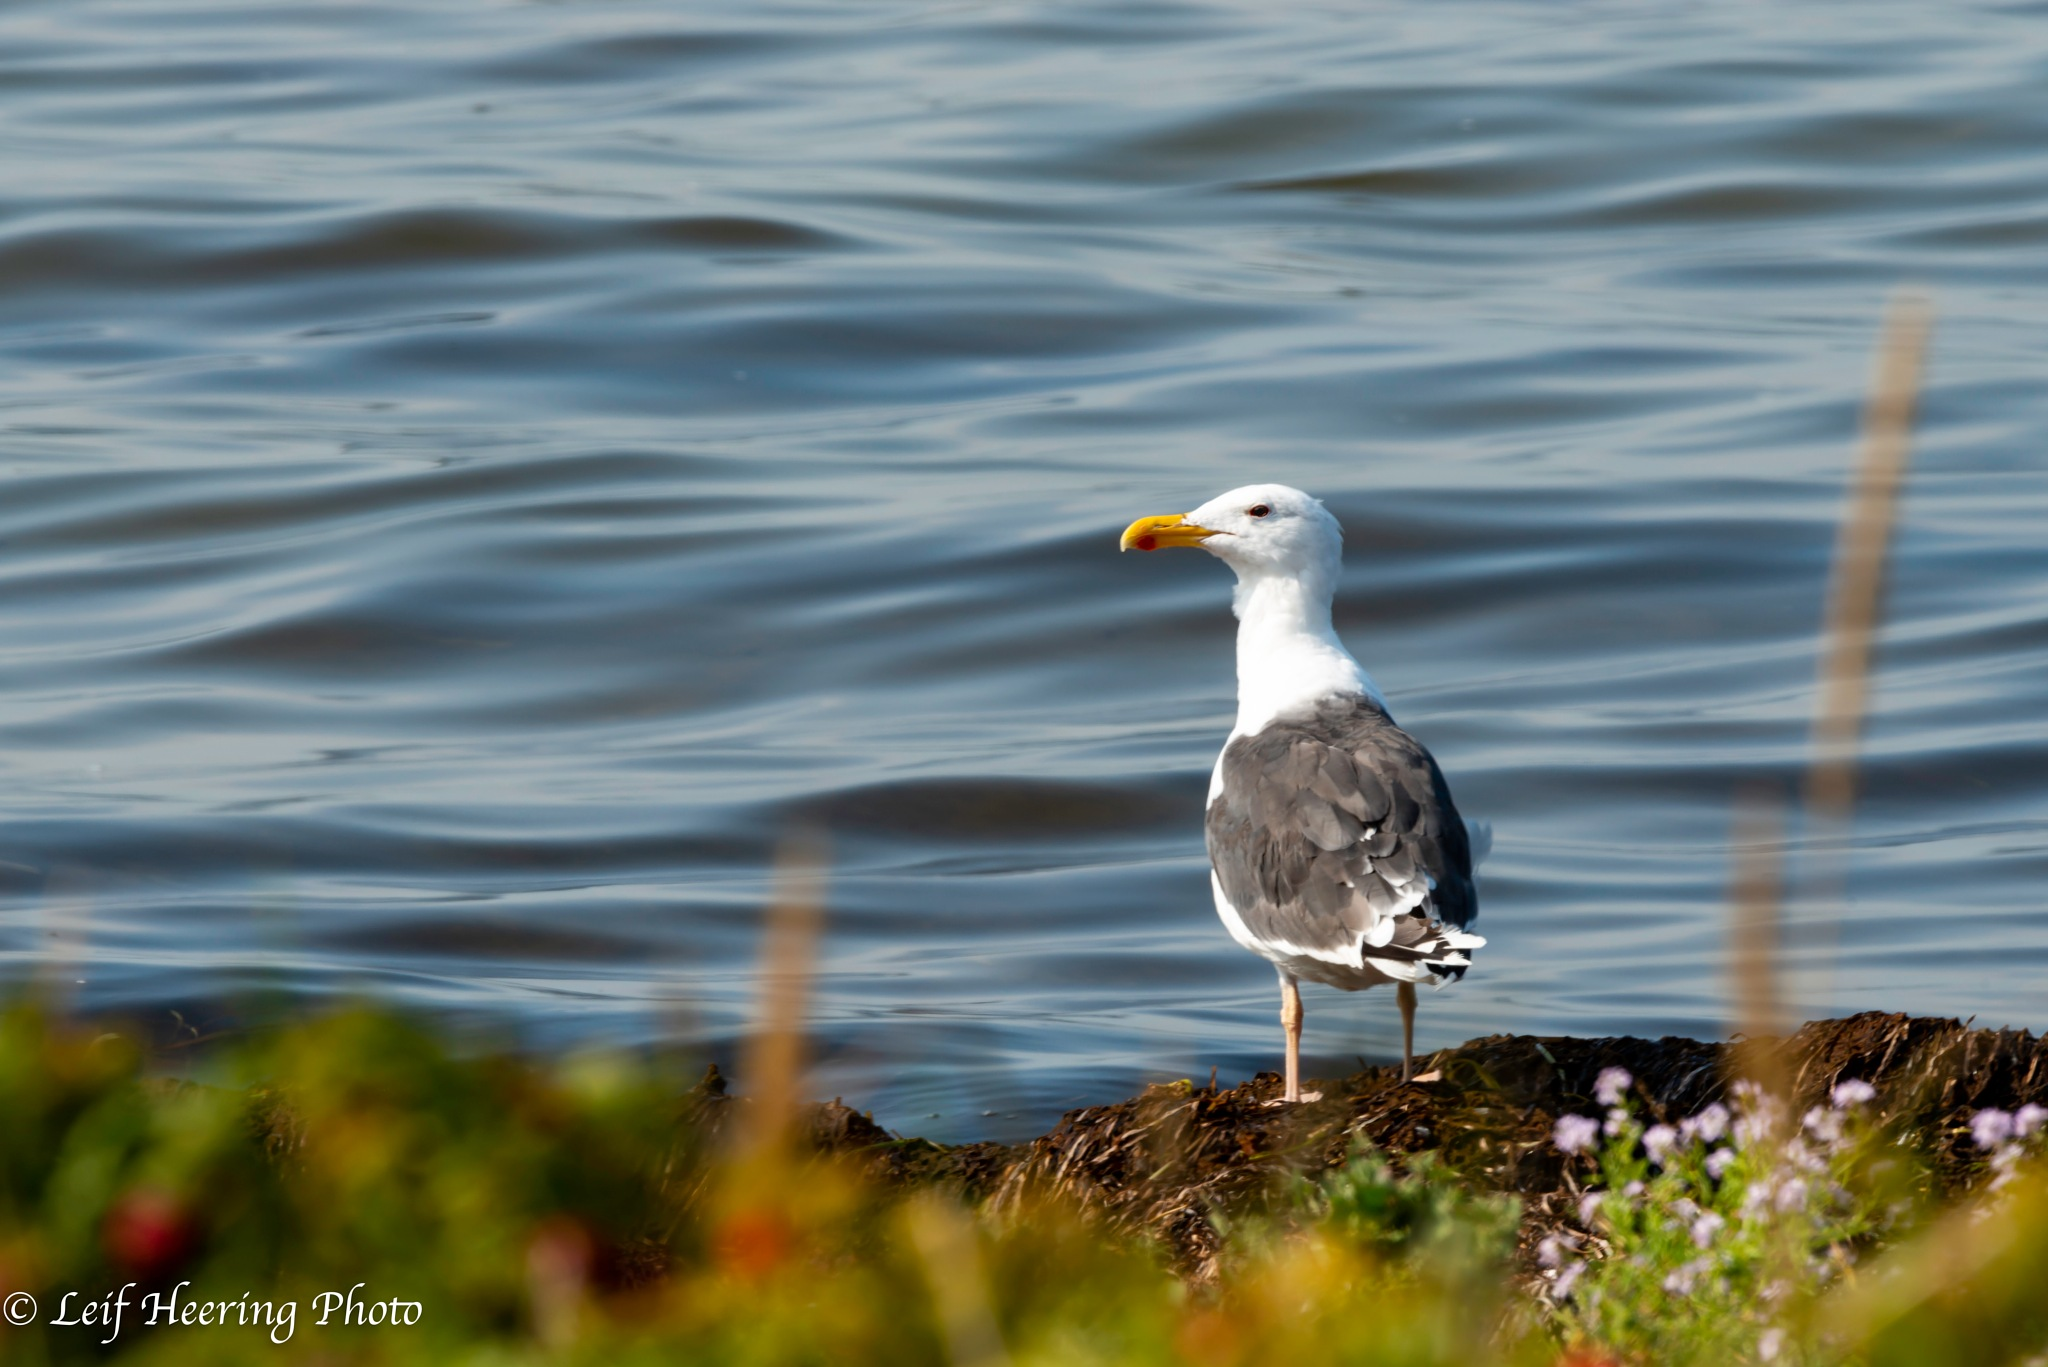 Seagull by Leif Heering